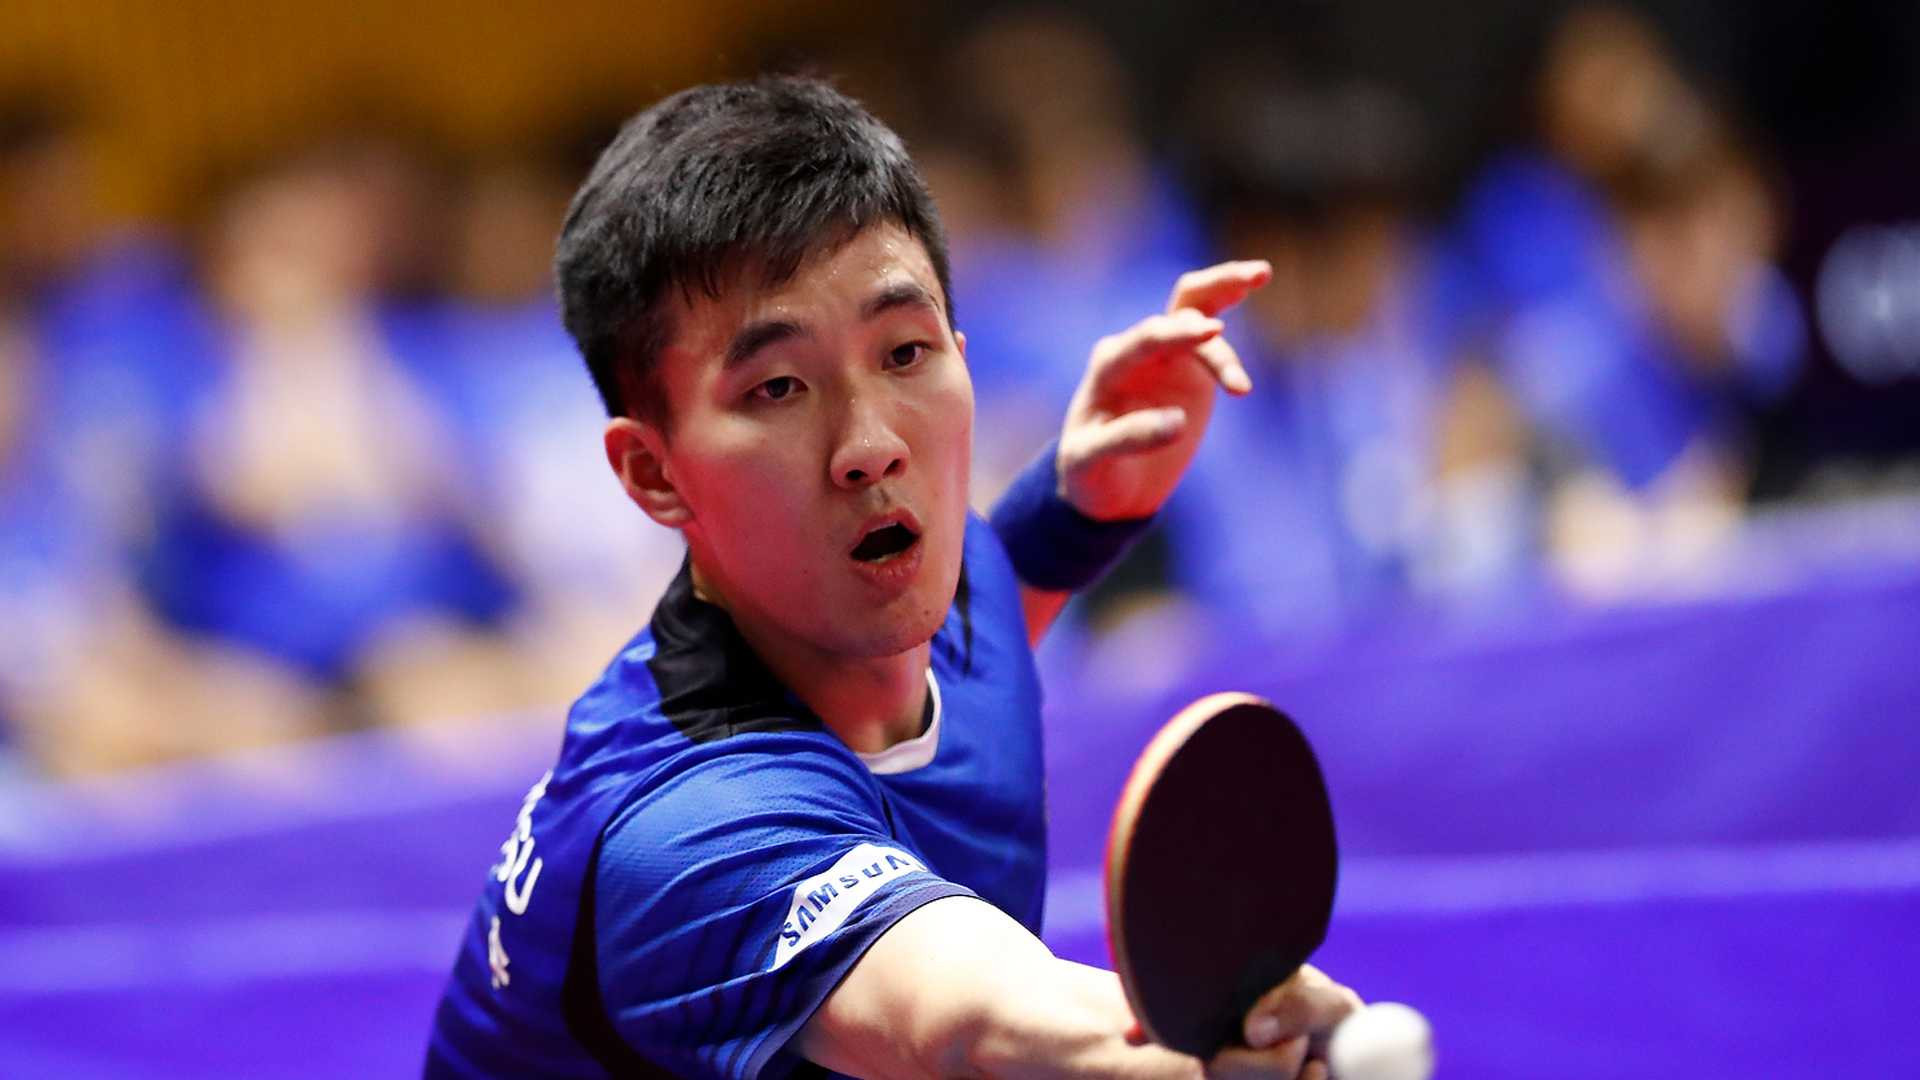 Portugal's Marcos Freitas caused an early upset in the men's singles event at the ITTF Korea Open as he beat Lee Sang-su ©ITTF